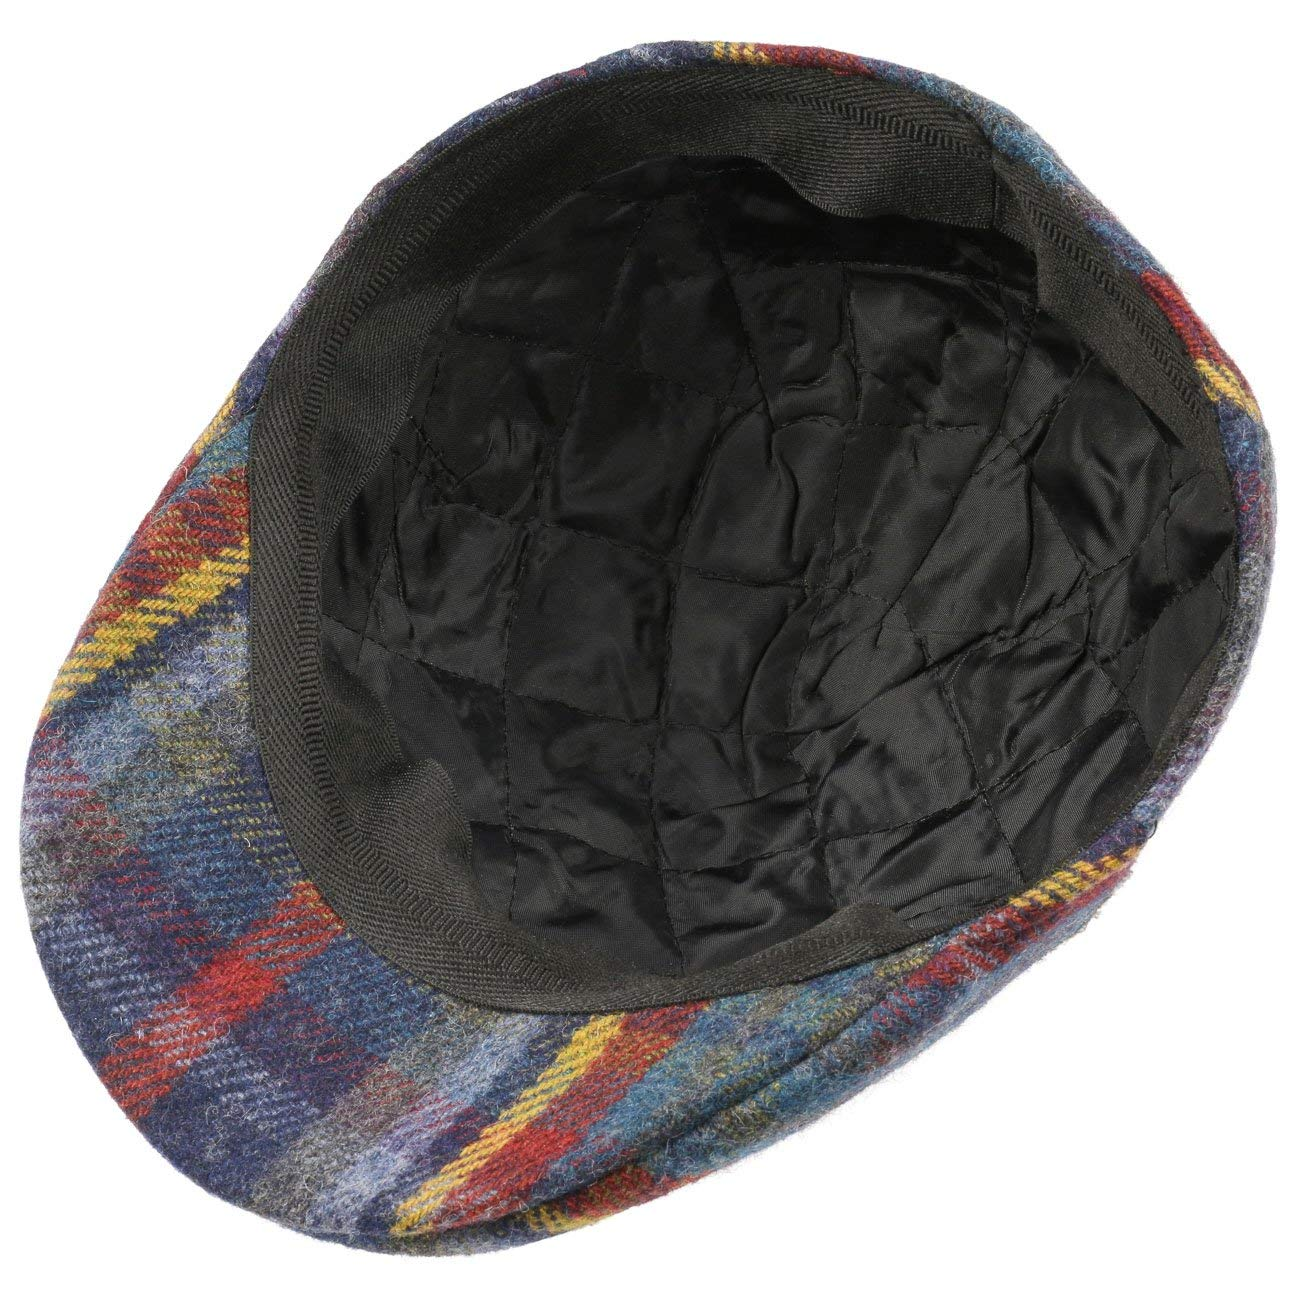 Made in Italy Lierys Tirreno Harris Tweed Flat Cap Men